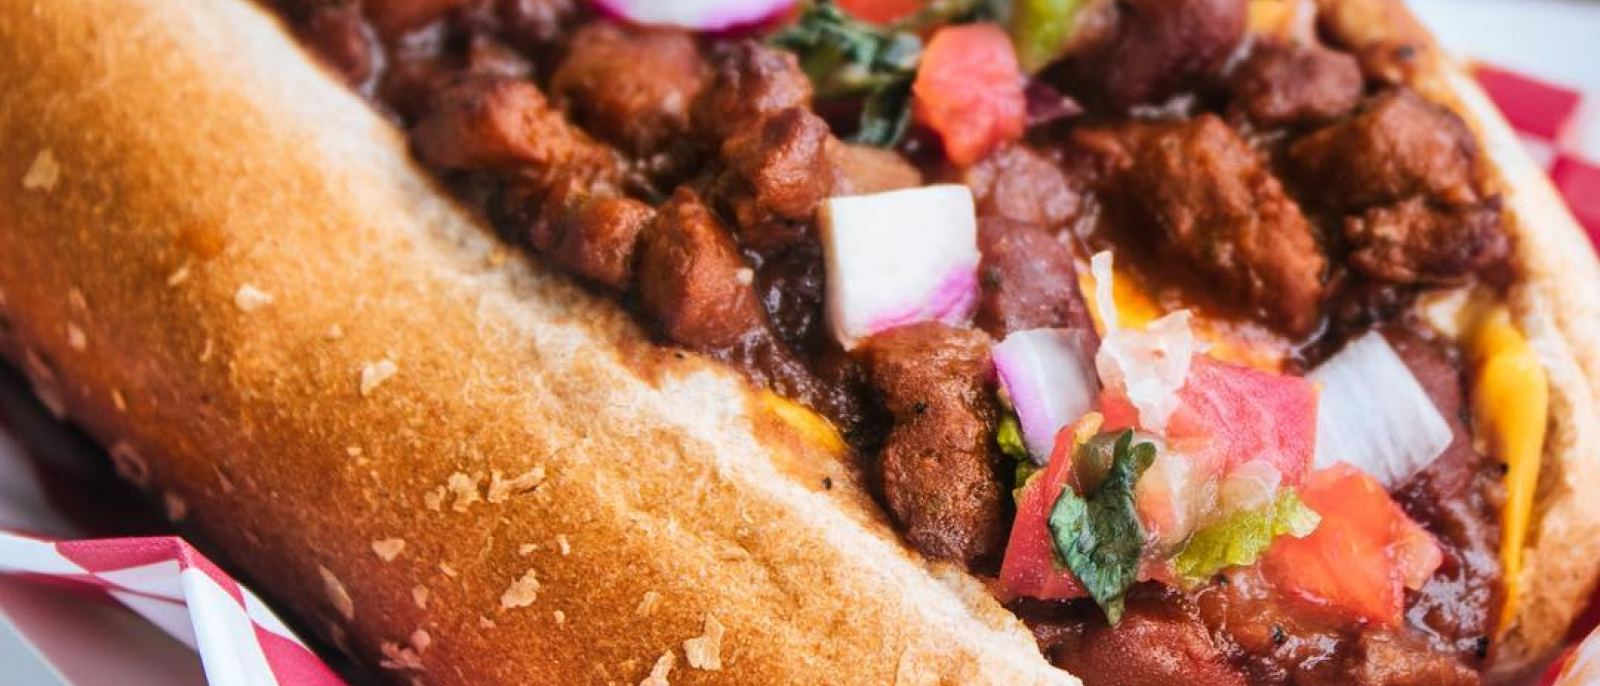 Vegan Chili Cheese Dog at Earle's on Crenshaw